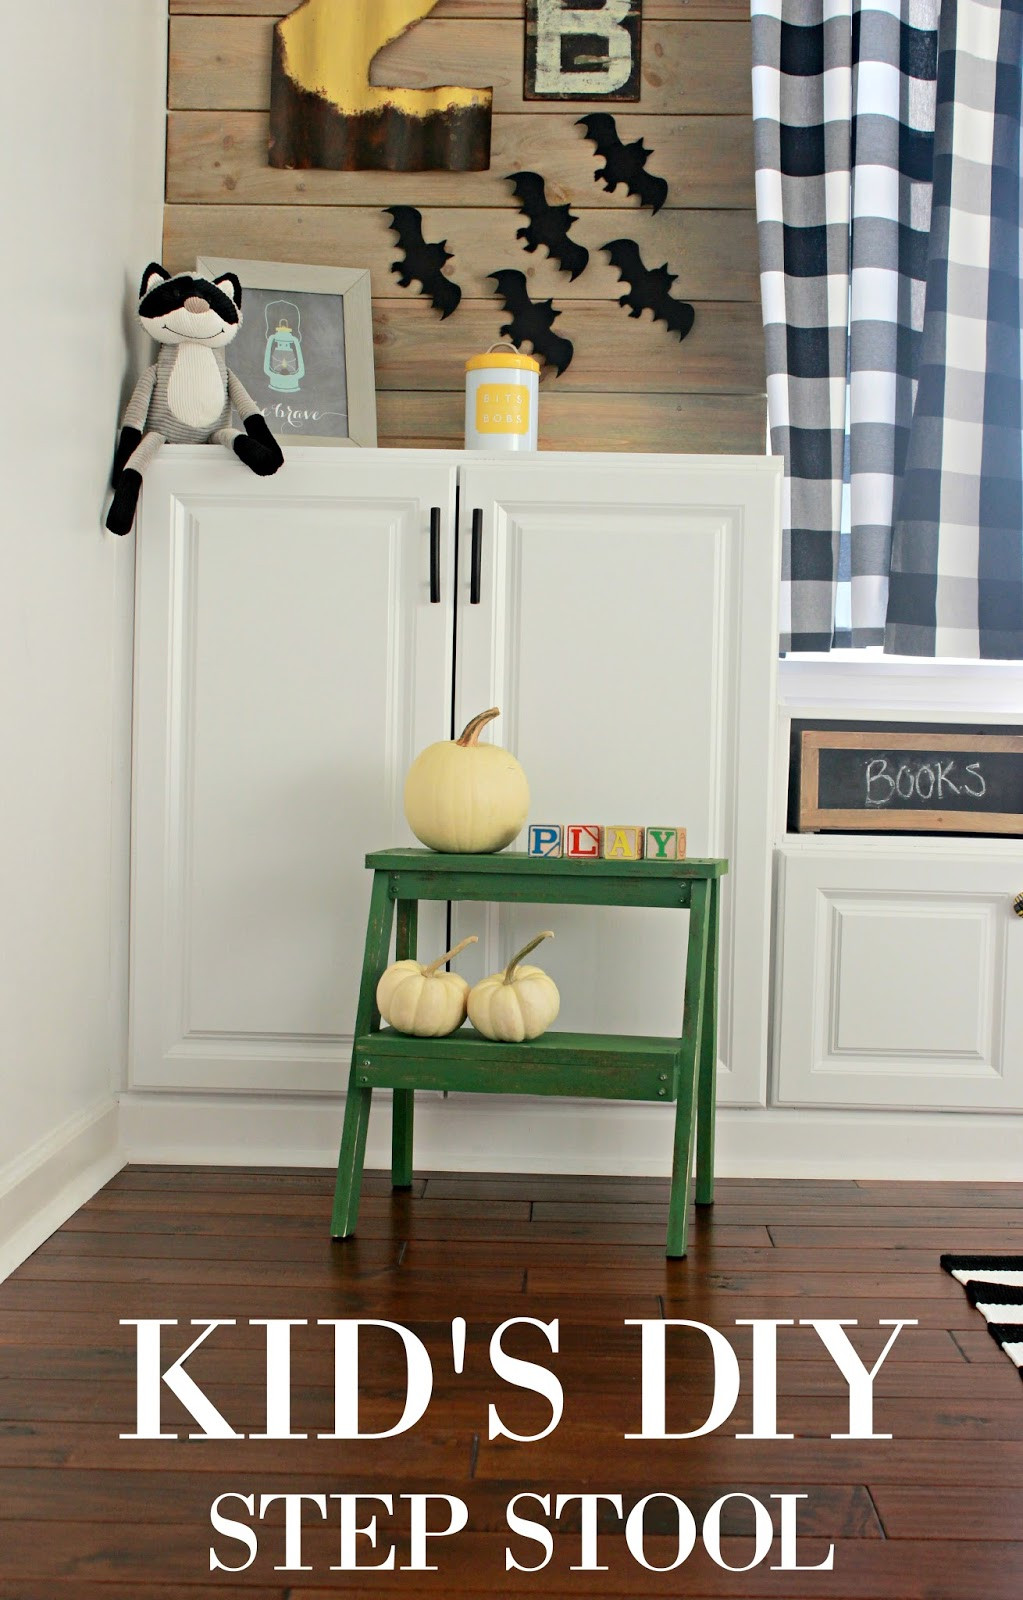 DIY Toddler Step Stool  Kid s DIY Step Stool and a New Chalk Paint Adventure